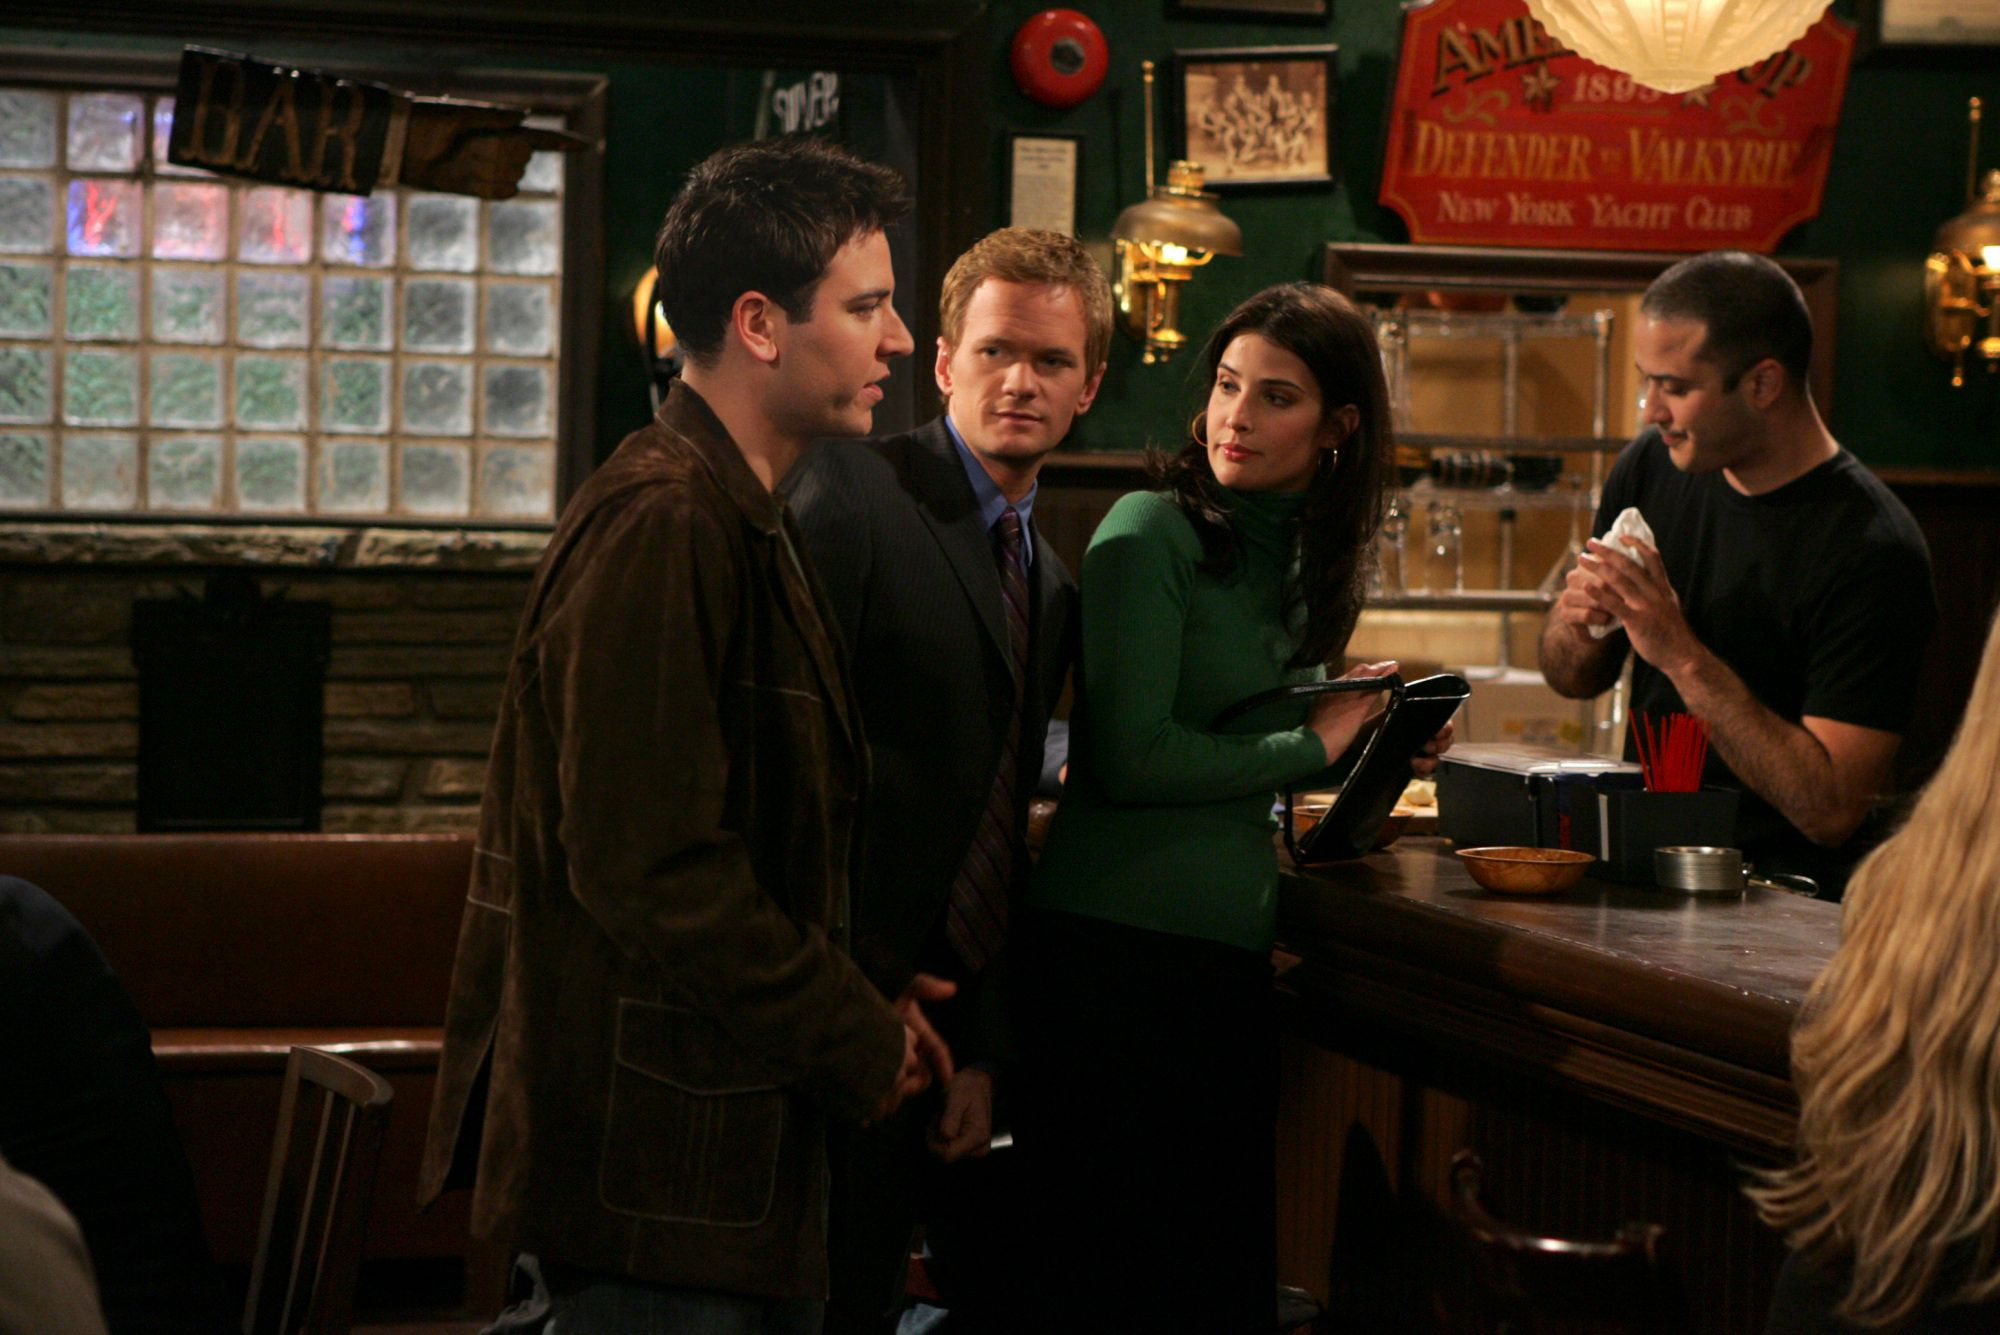 LOS ANGELES - APRIL 6: 'Pilot' -- Cobie Smulders (right) Neil Patrick Harris (center) and Josh Radnor, of the CBS Pilot HOW I MET YOUR MOTHER  (Photo by Monty Brinton/CBS via Getty Images)